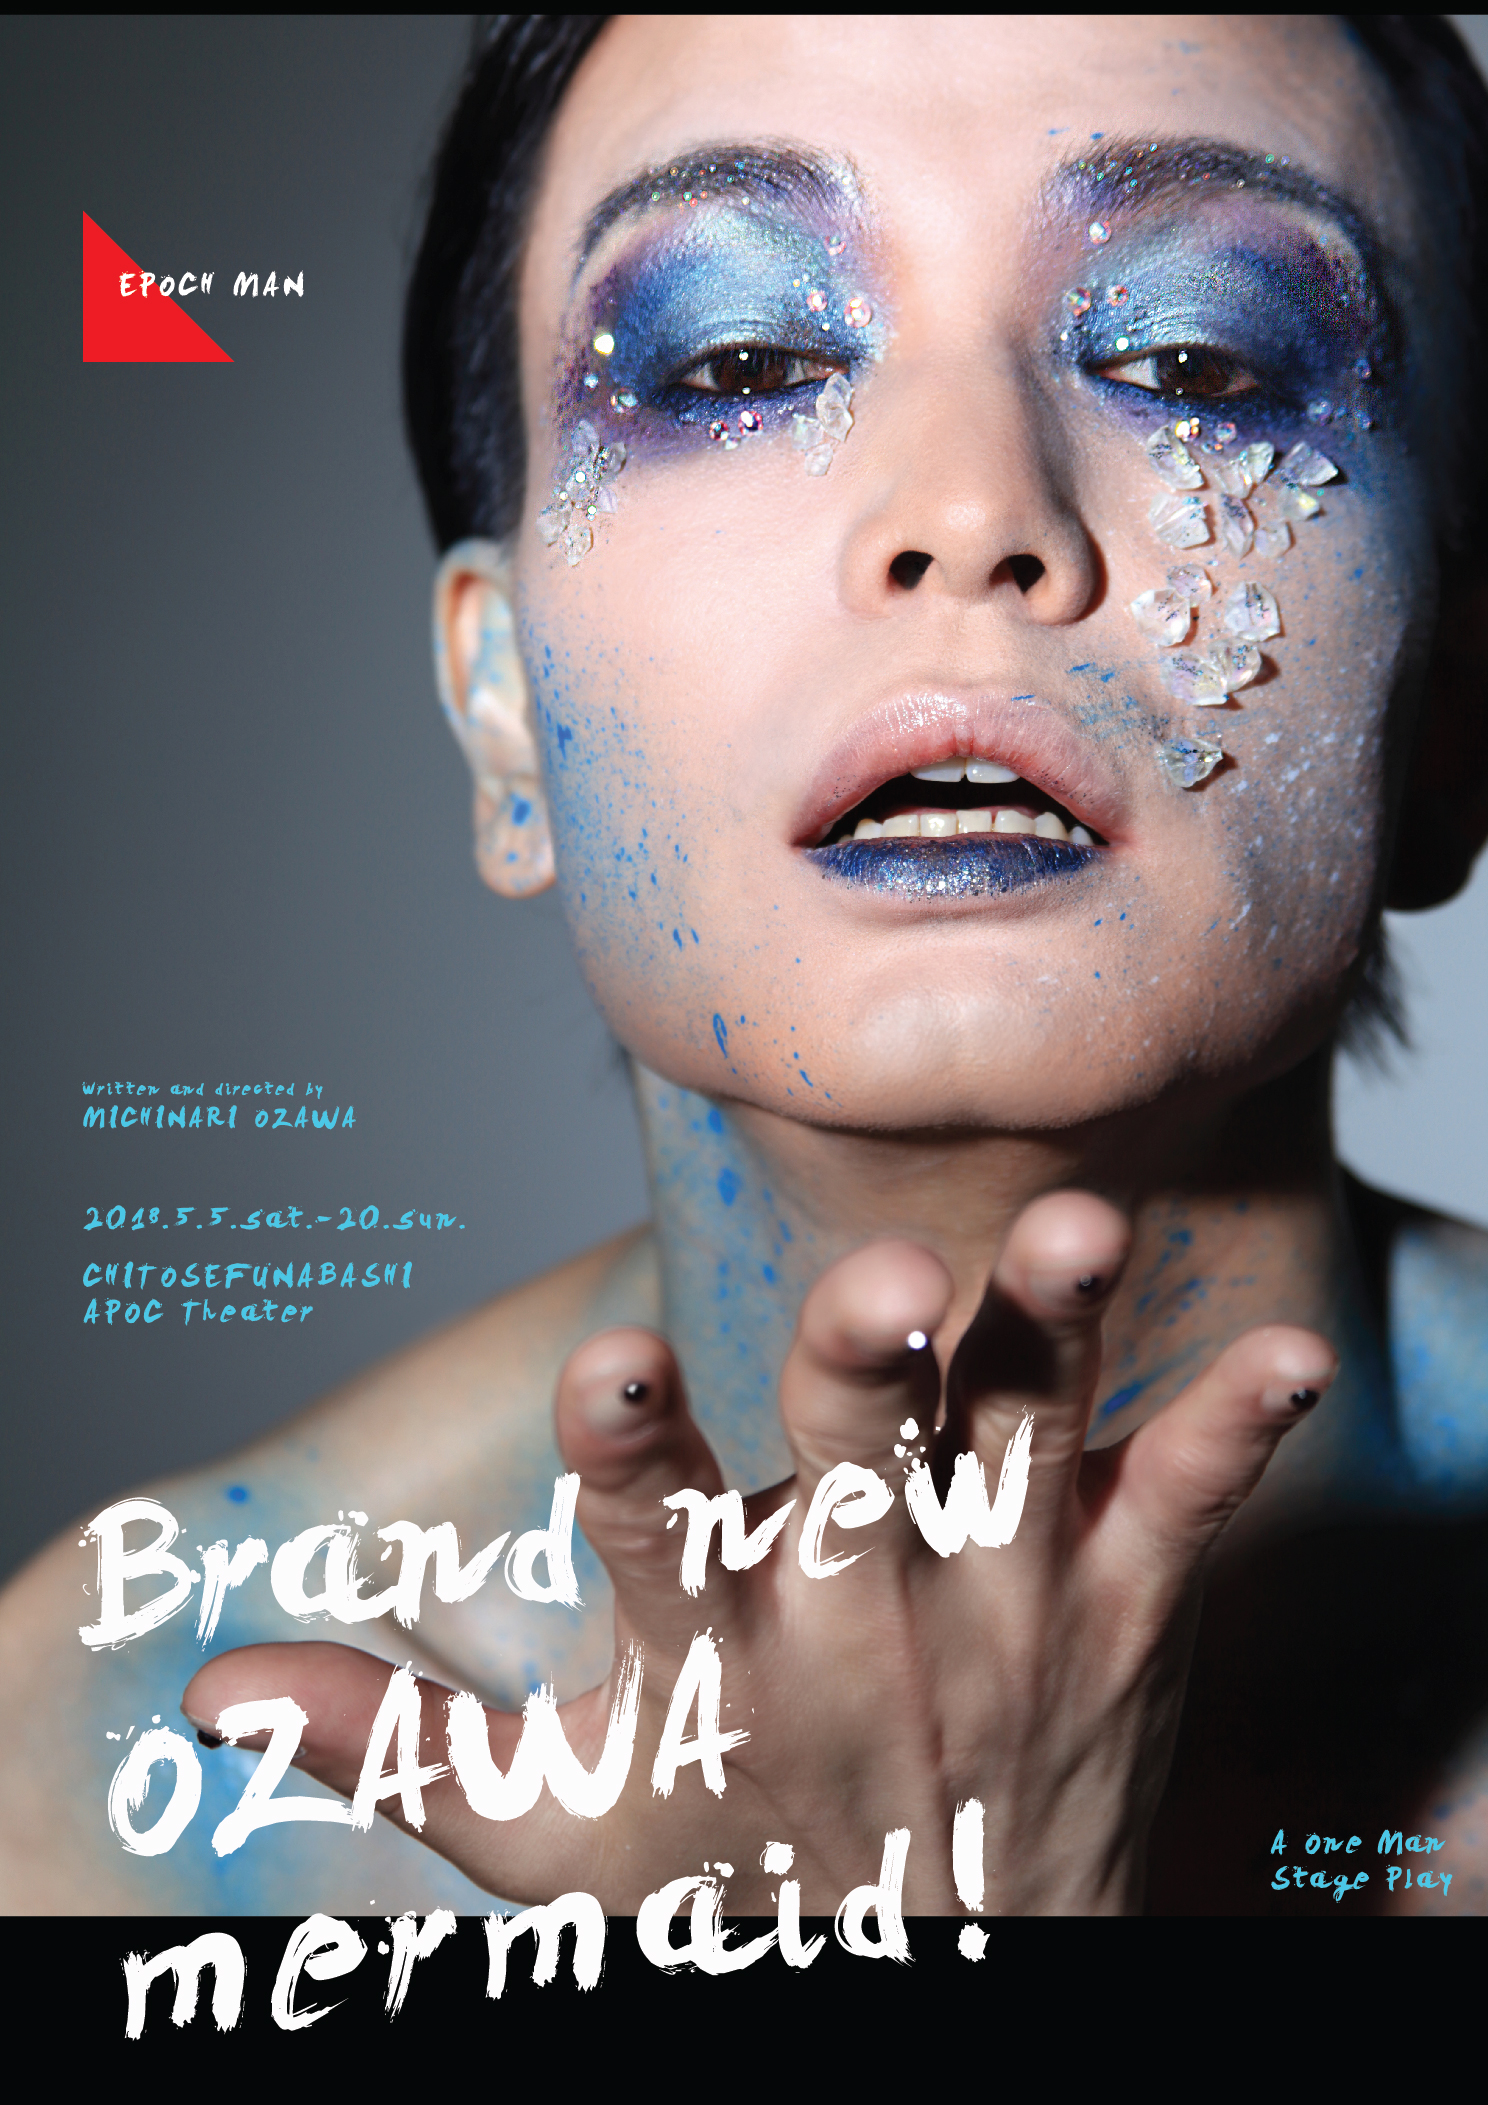 EPOCH MAN『Brand new OZAWA mermaid!』